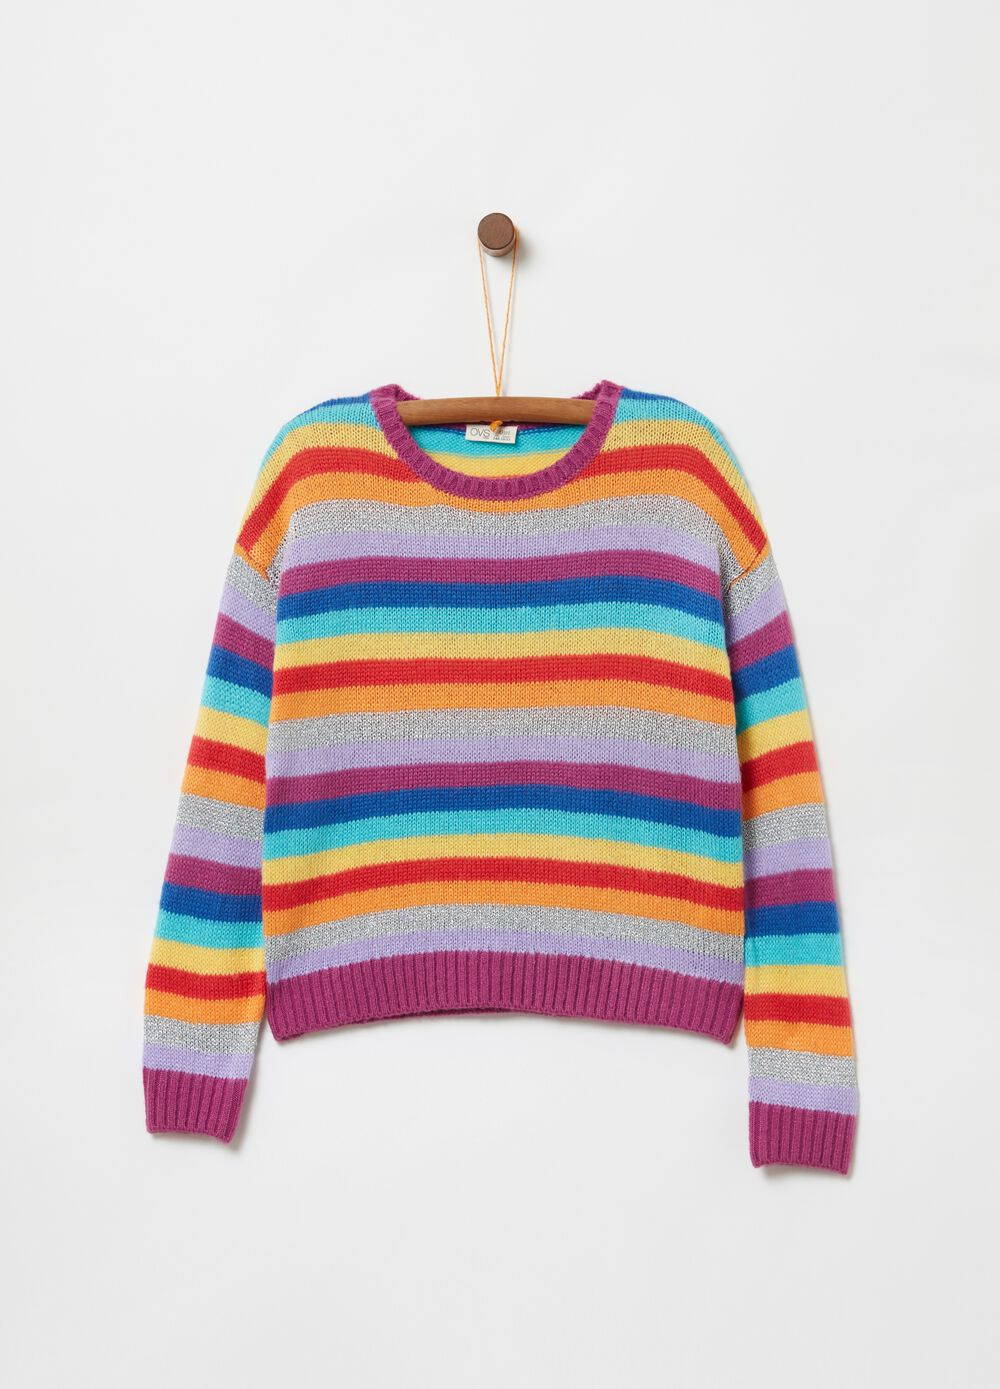 Knit top with striped pattern with lurex